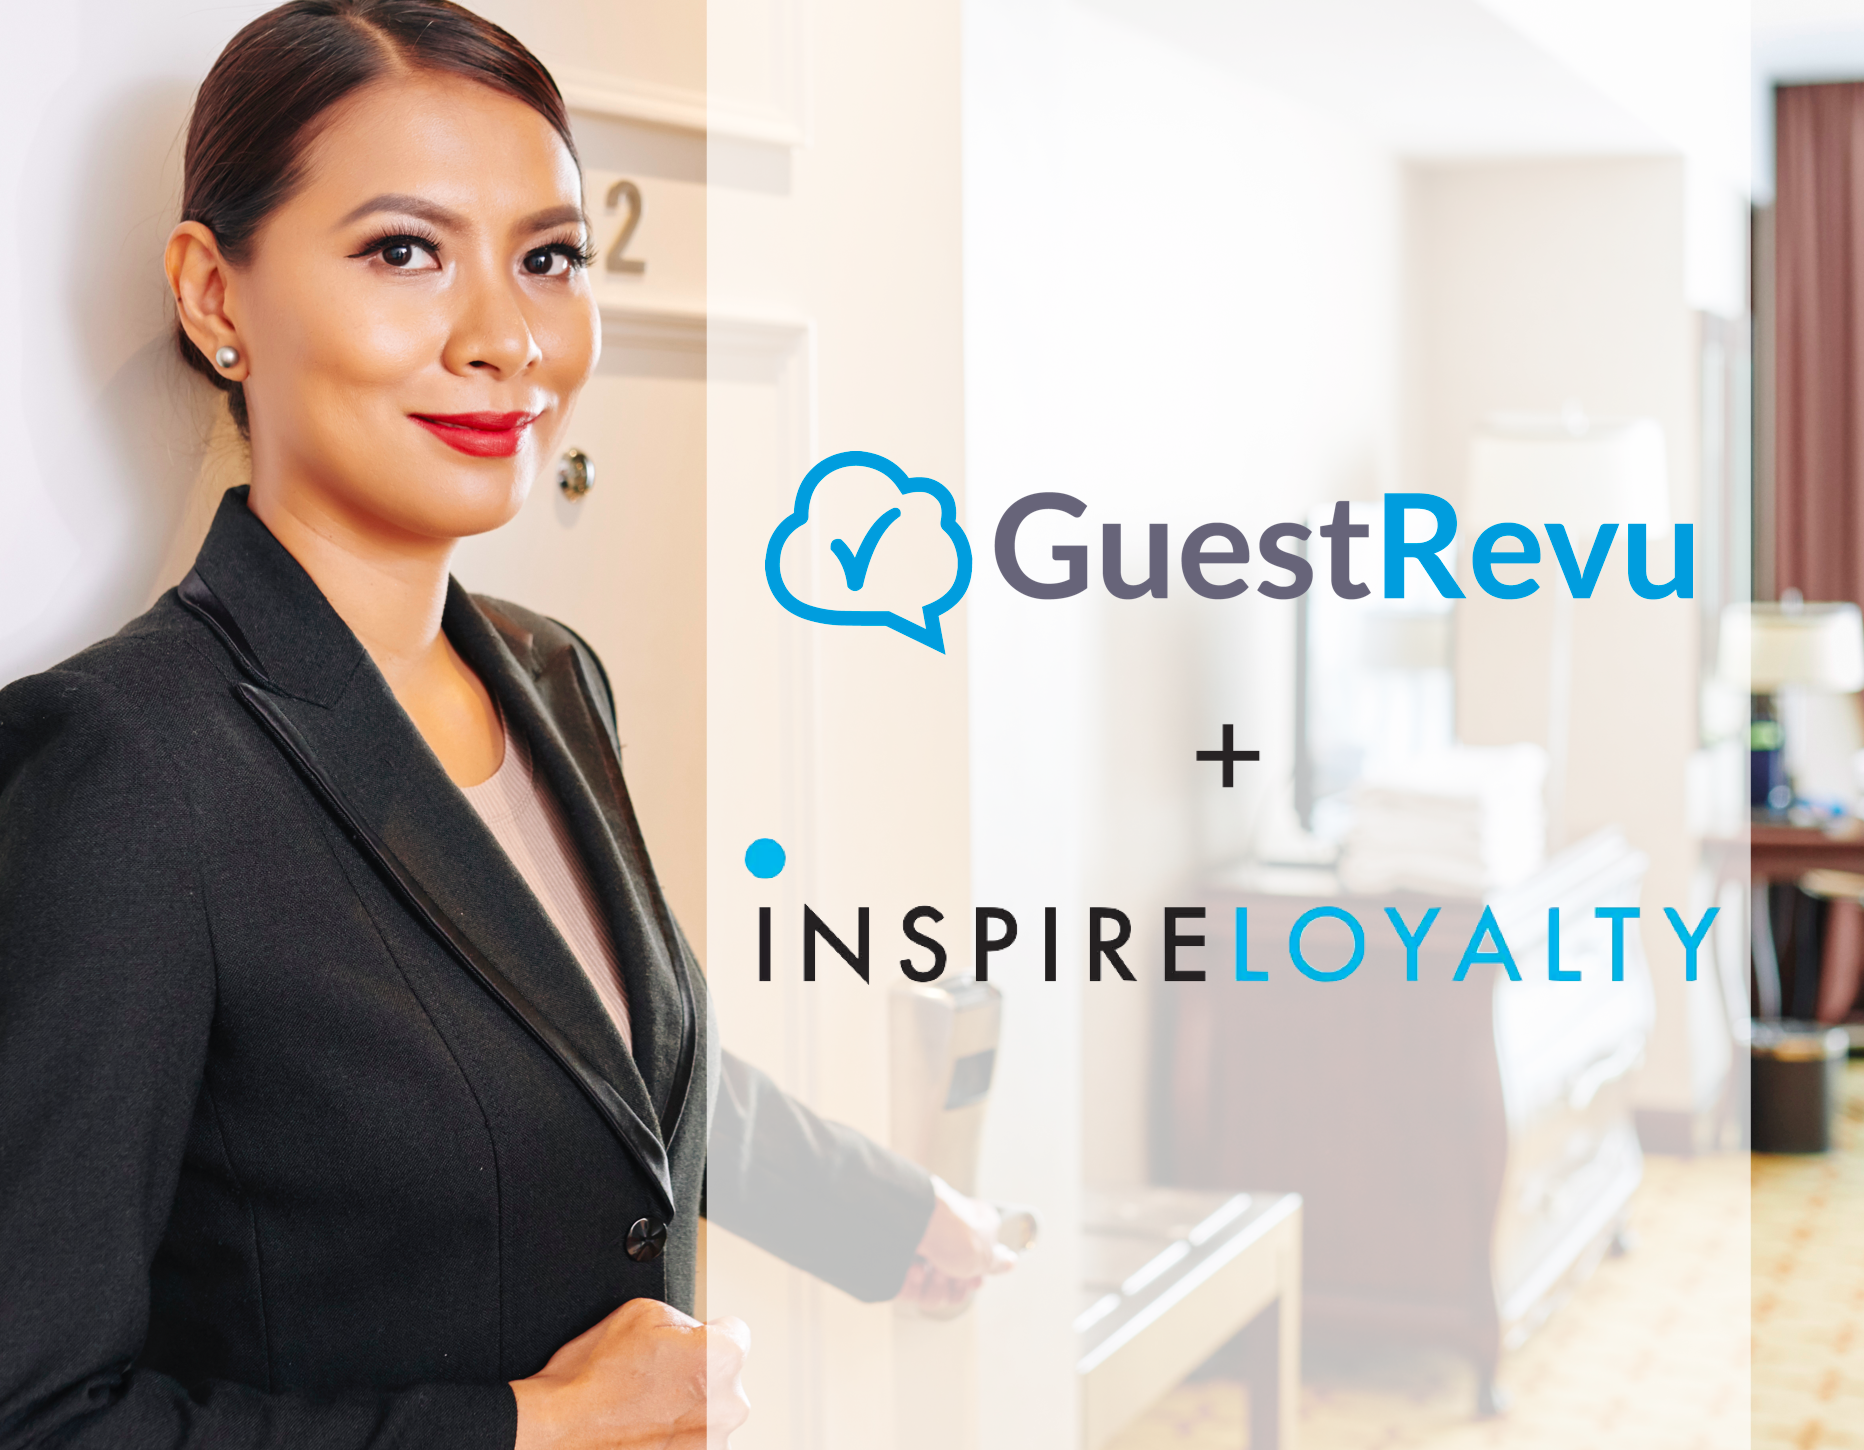 guestrevu-inspire-loyalty copy